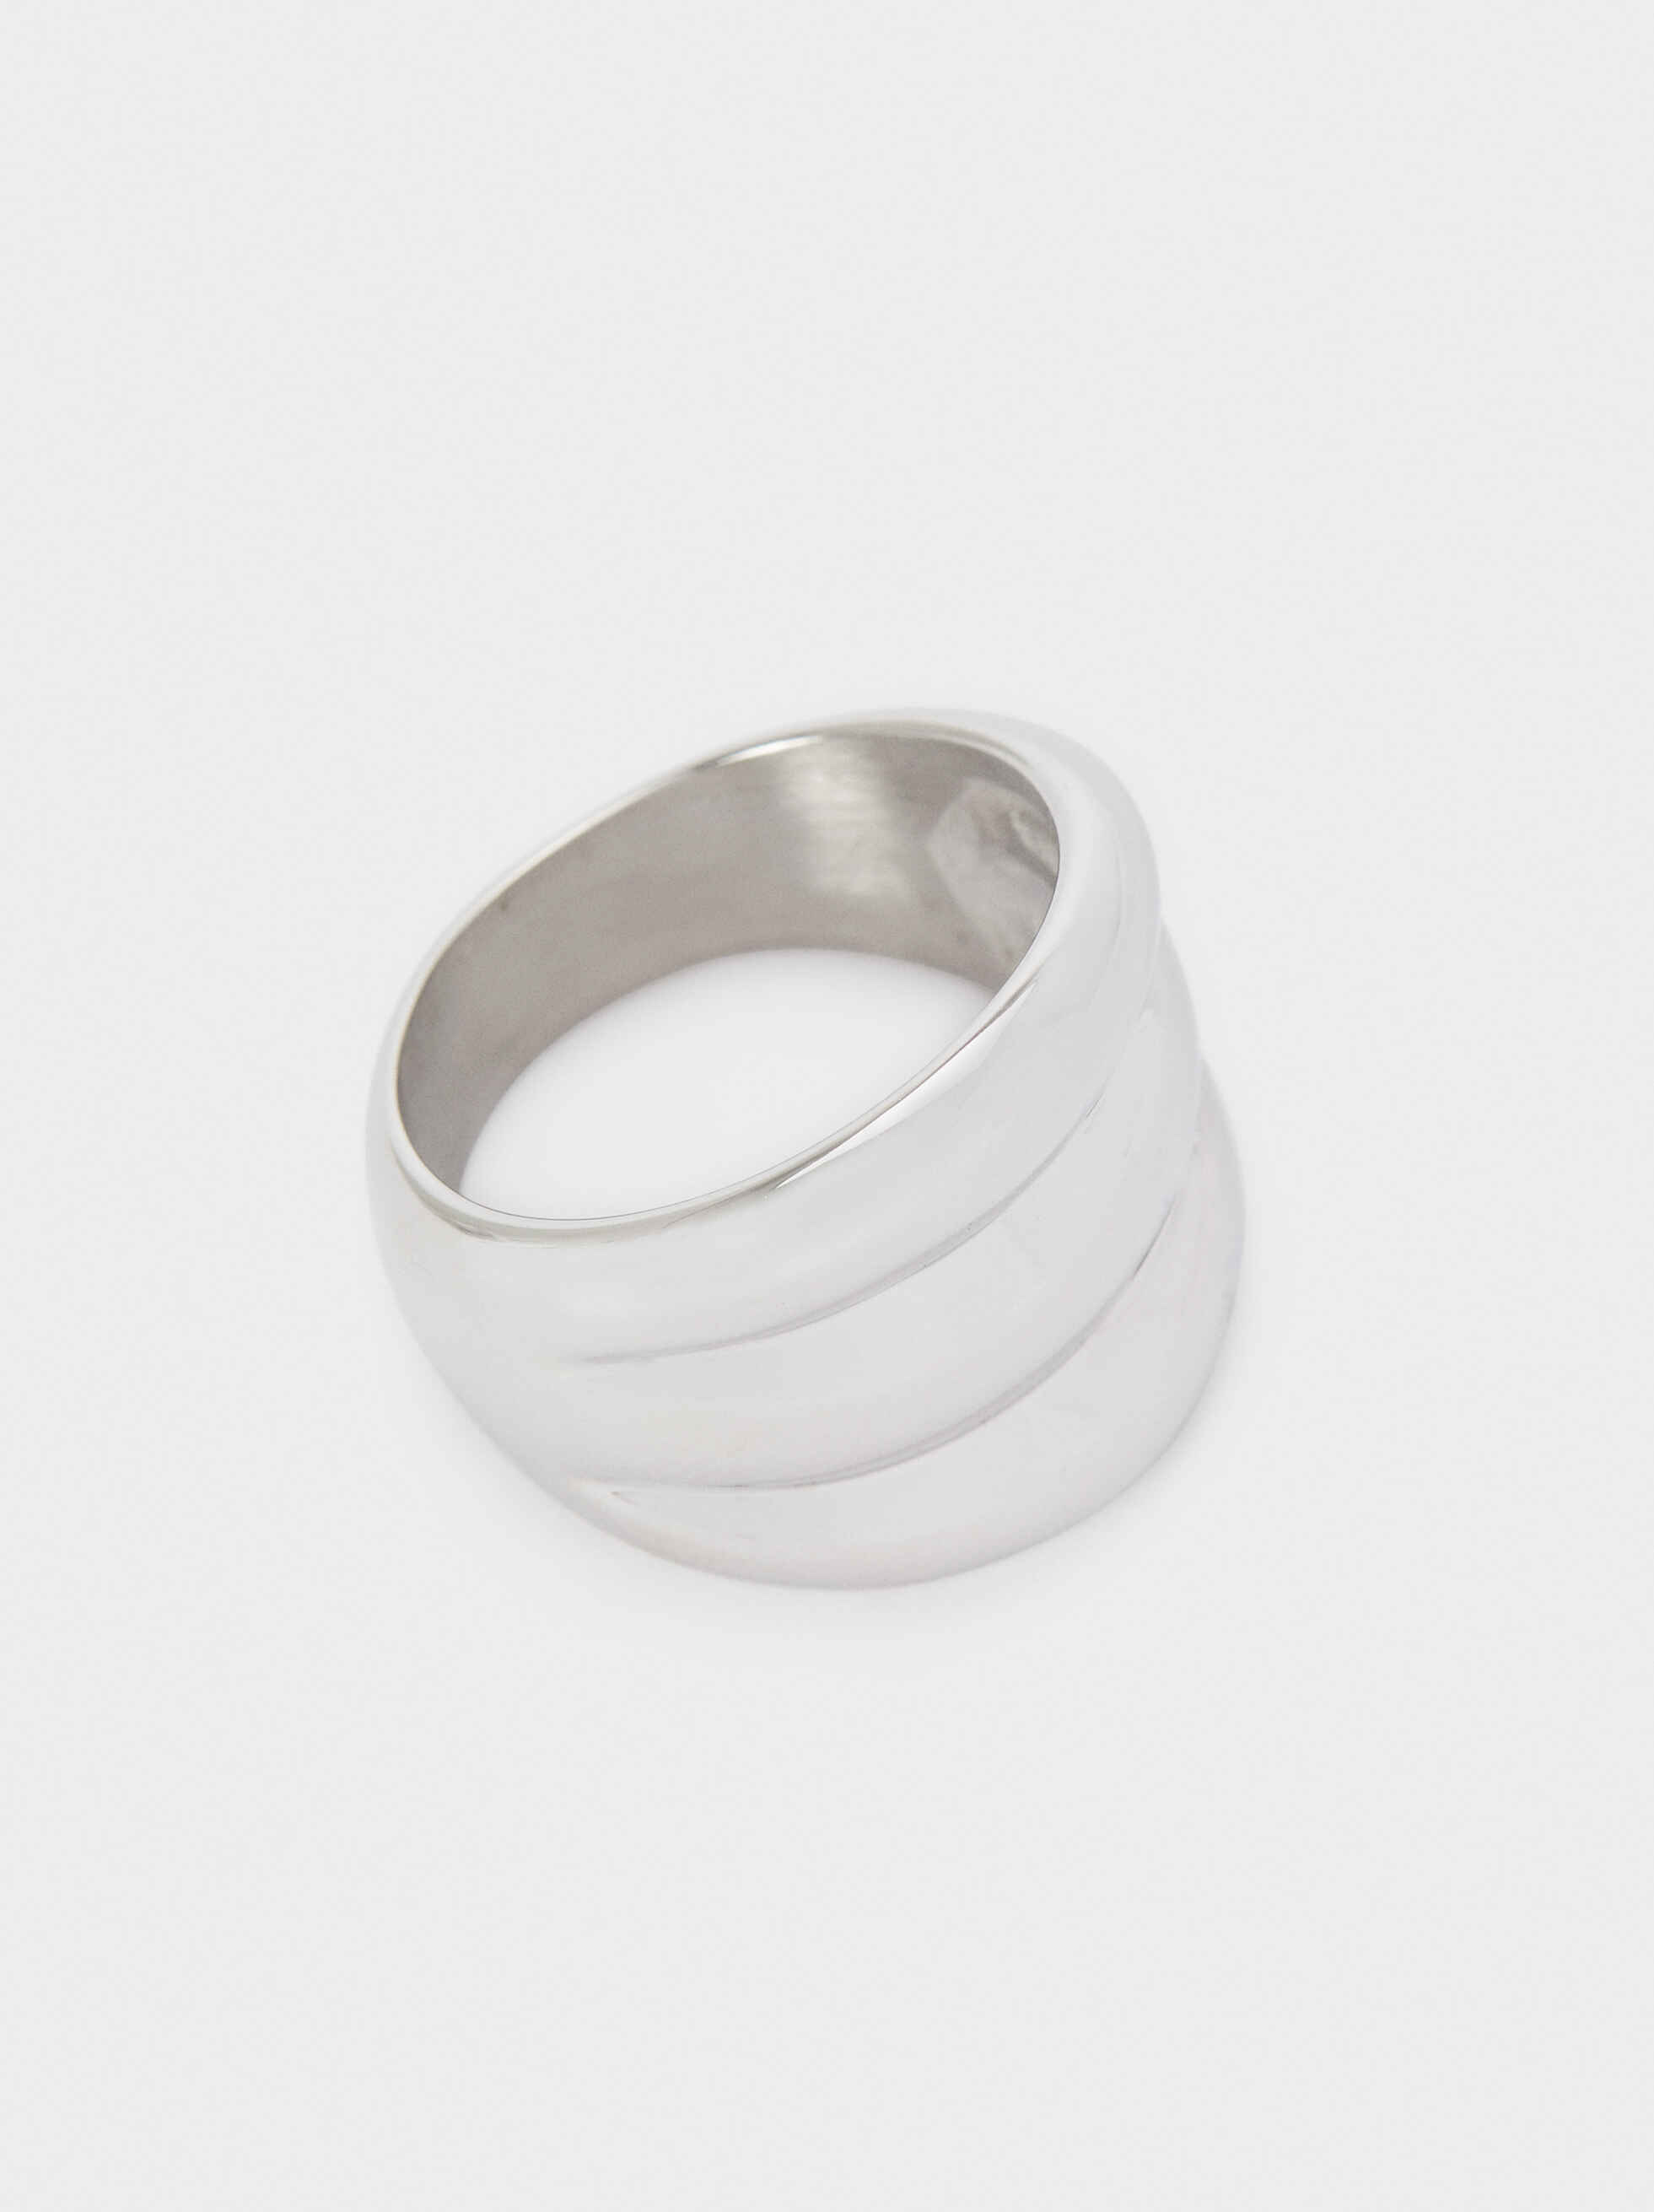 Three-Colour Stainless Steel Ring, Silver, hi-res